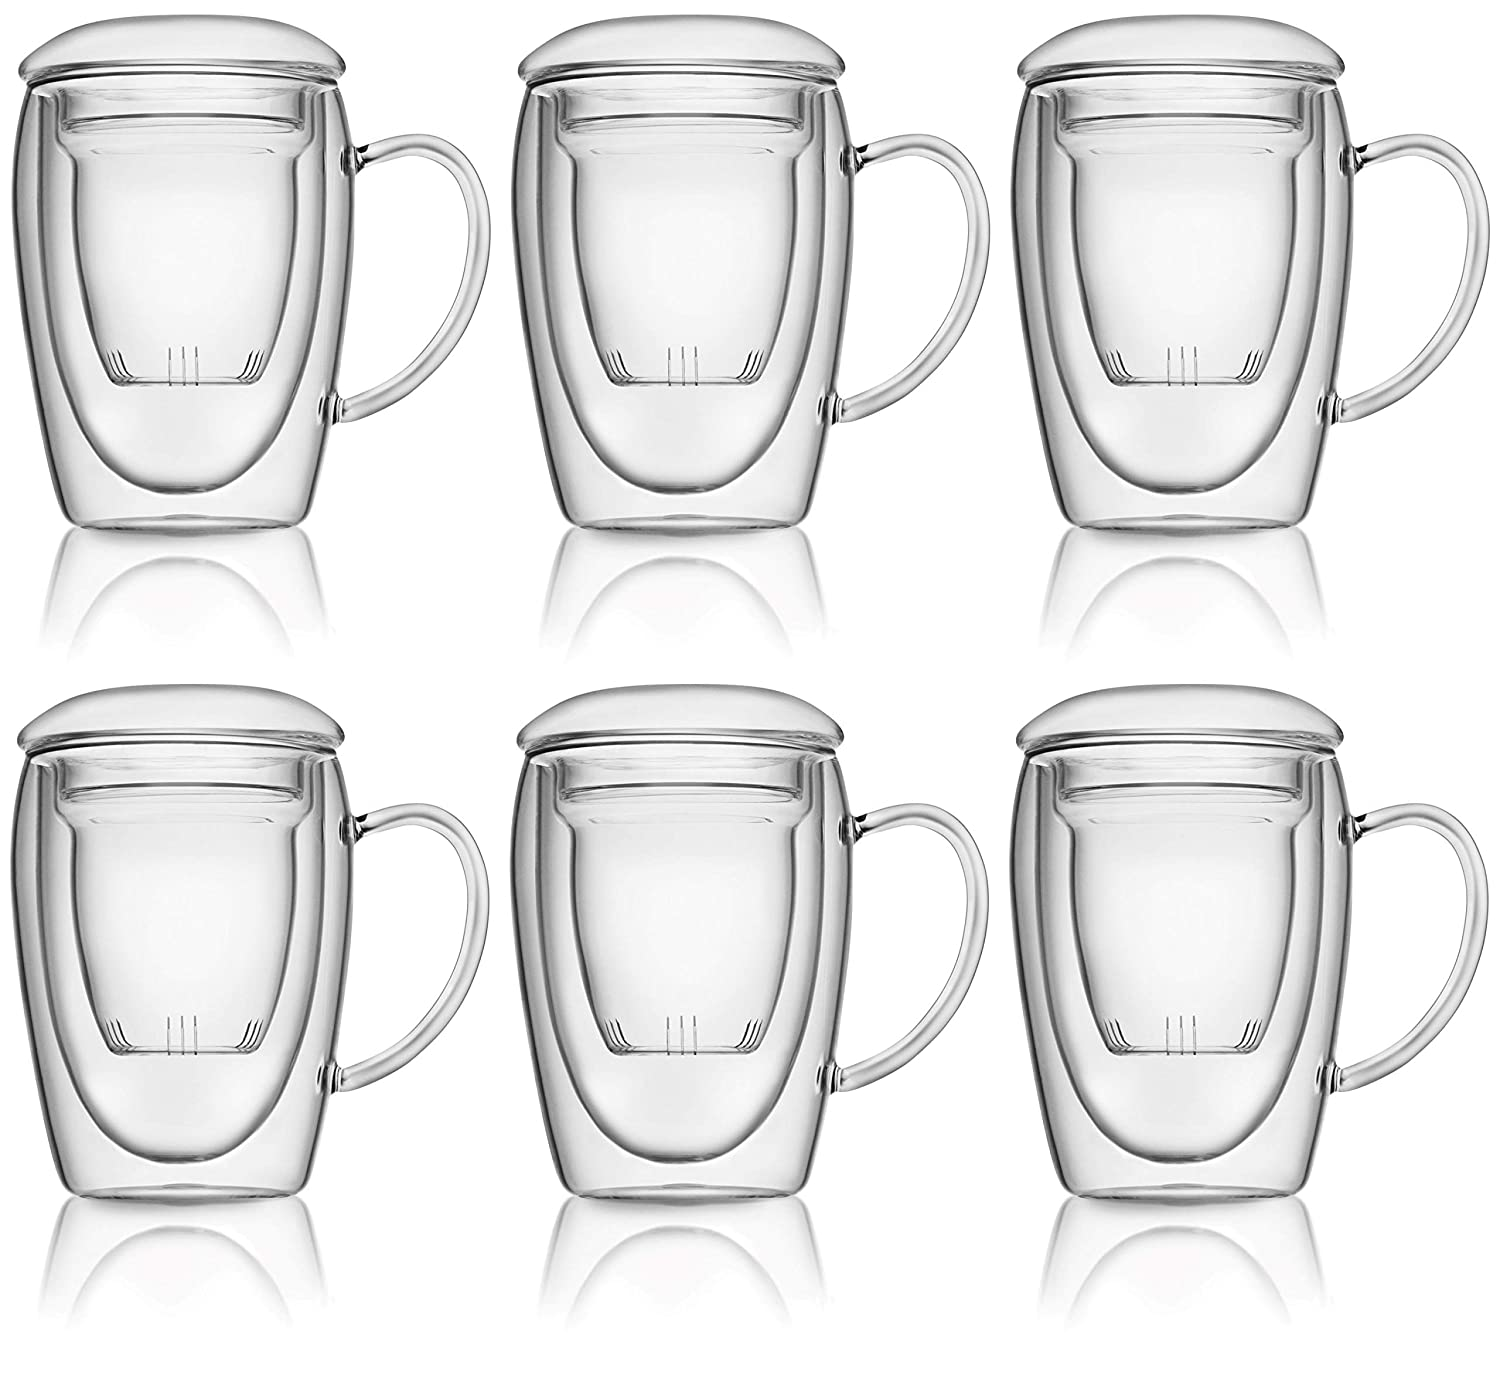 Double Wall Glass Mugs with Infusers Schott Zwiesel Suitable for Both Hot and Cold Beverages Set of 6 Hand Borosilicate Glass Mugs and Infusers 28 cl